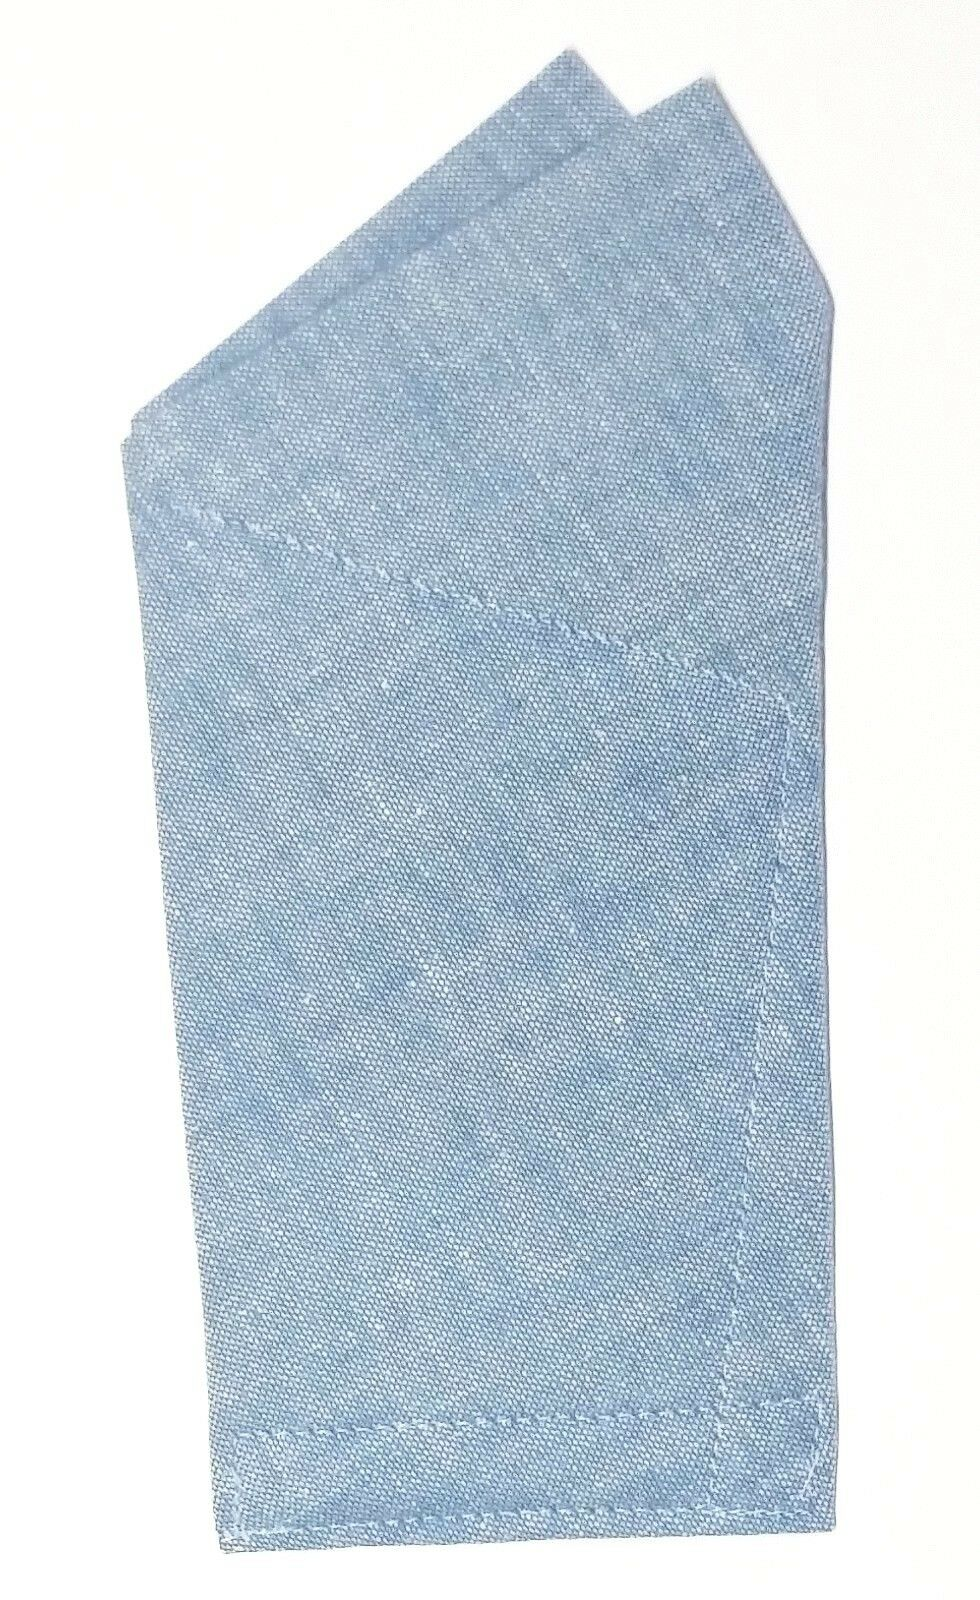 POCKET SQUARE Blue Chambray 2 point wing - folded & Sewn ready to slip in pocket